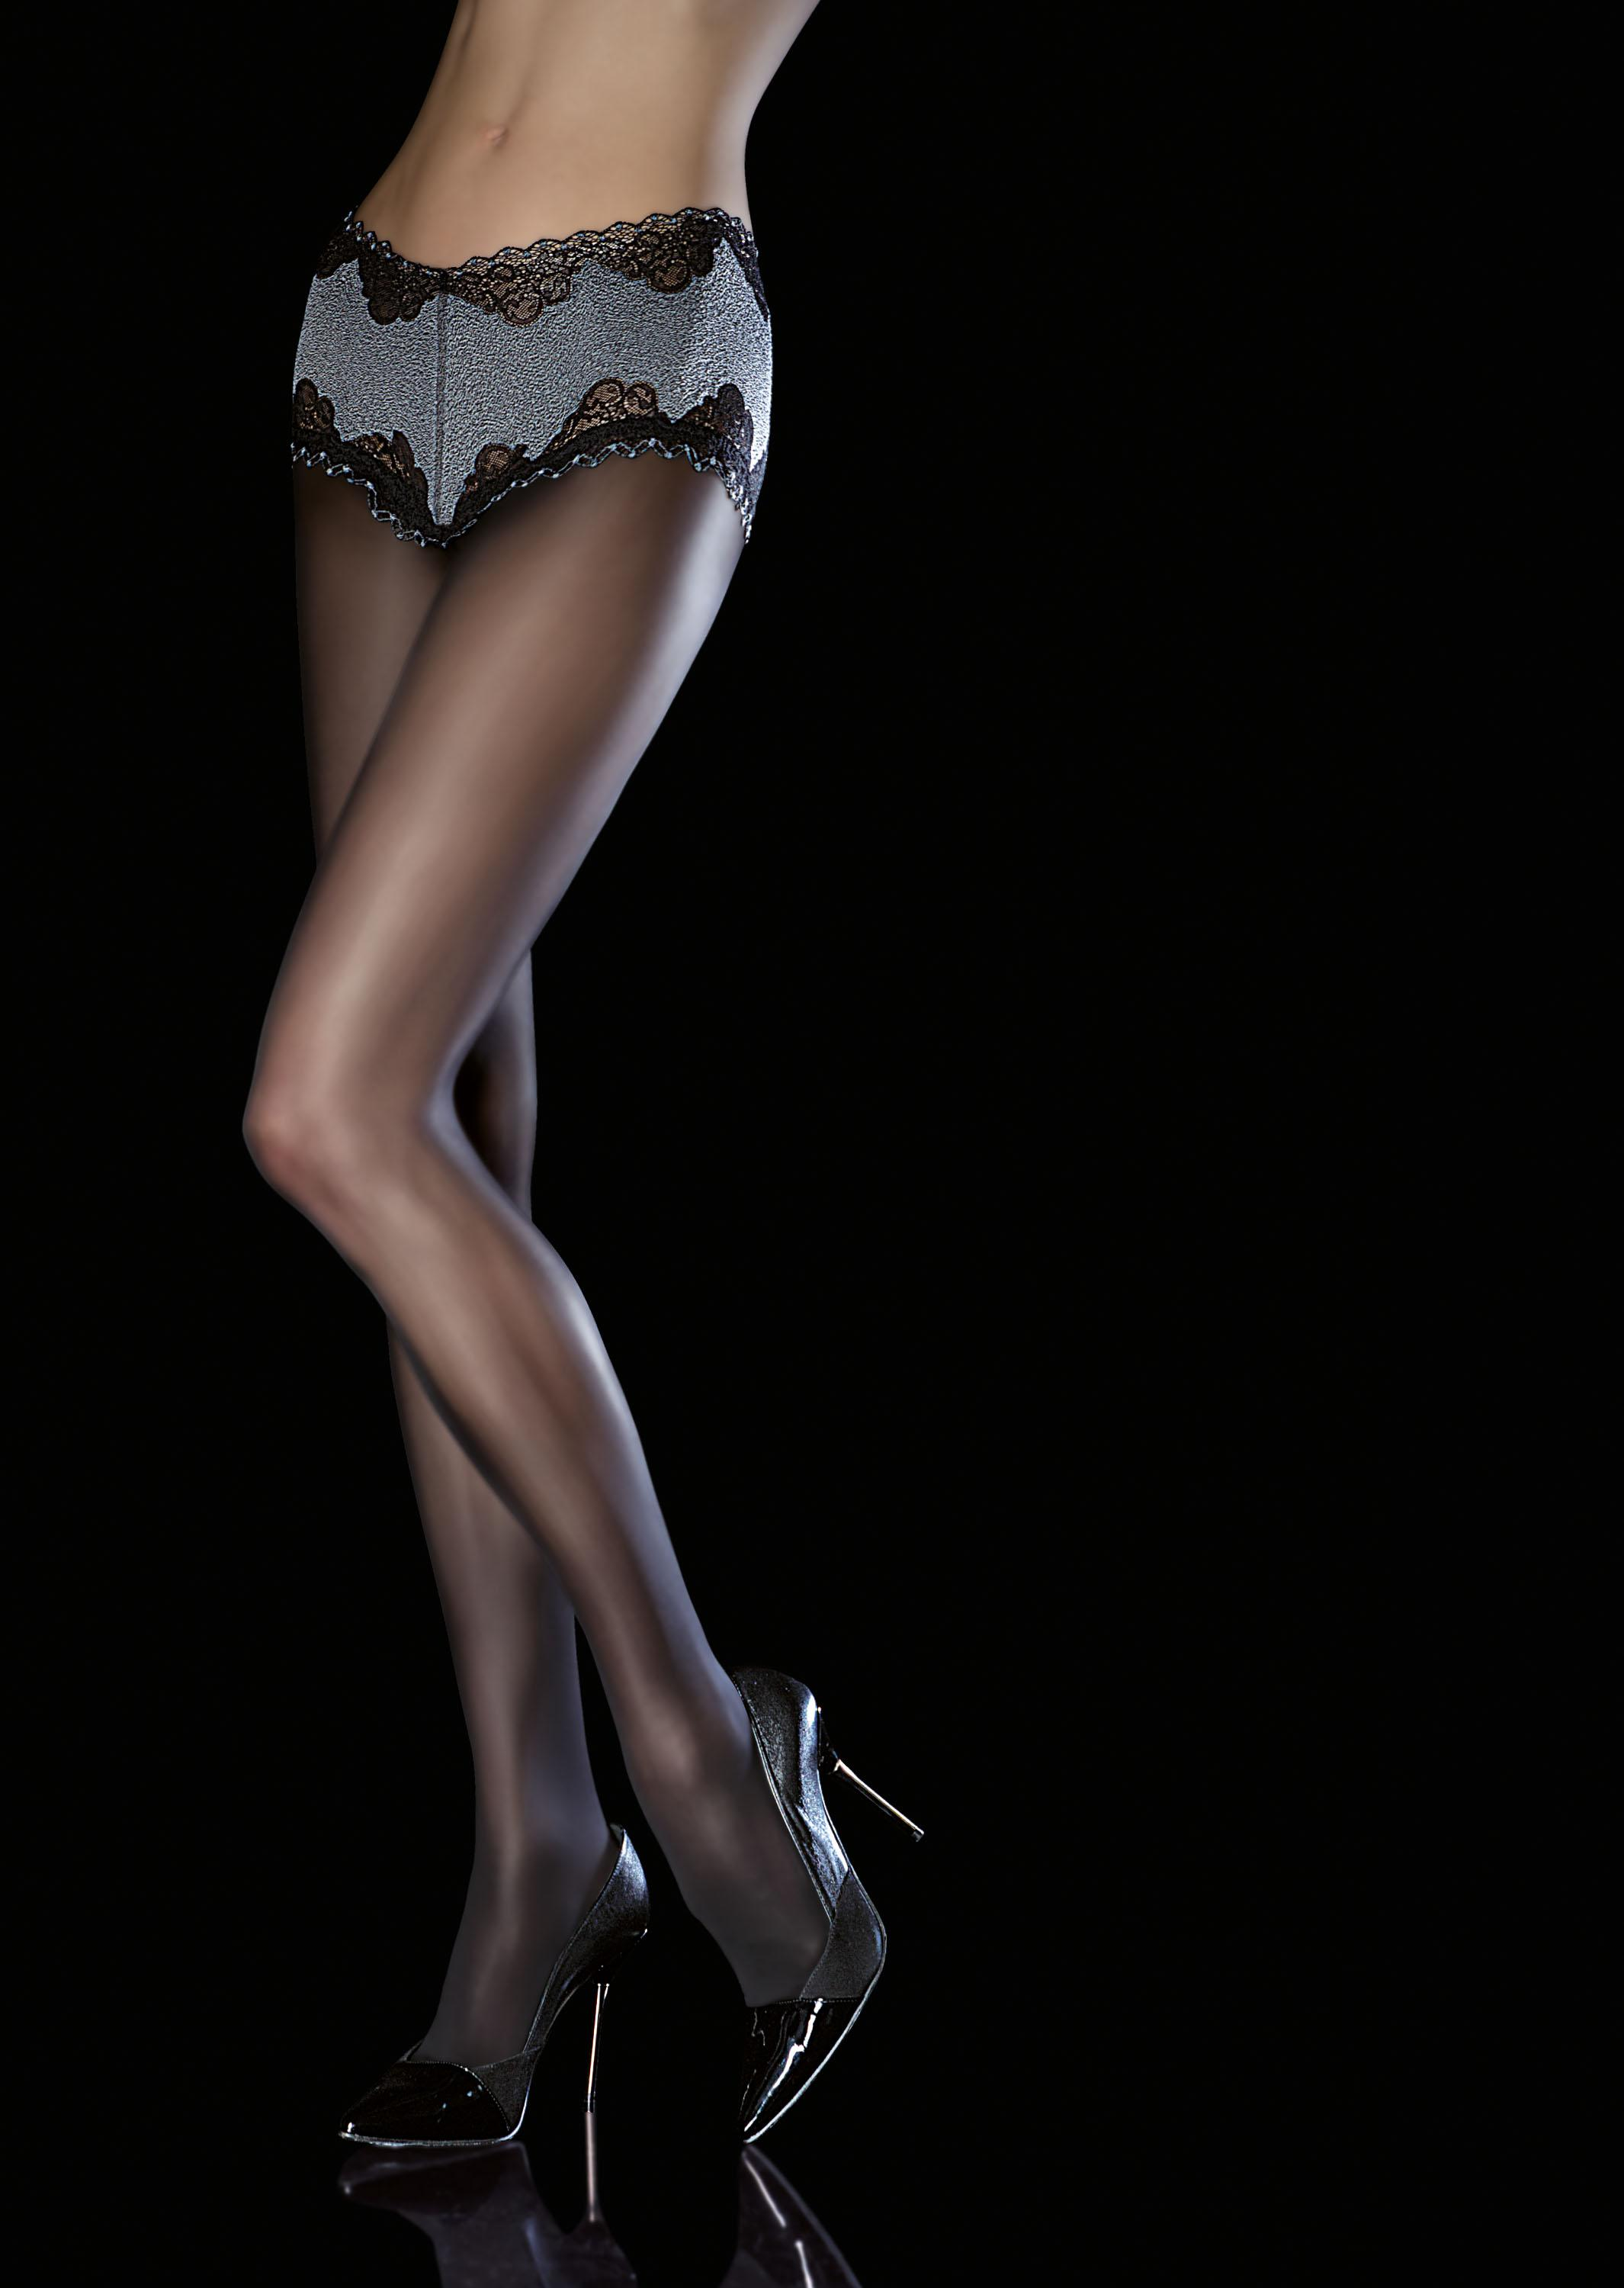 Fiore AMITIS Tights Luxury Tights 40 DEN with Lace Panty  New